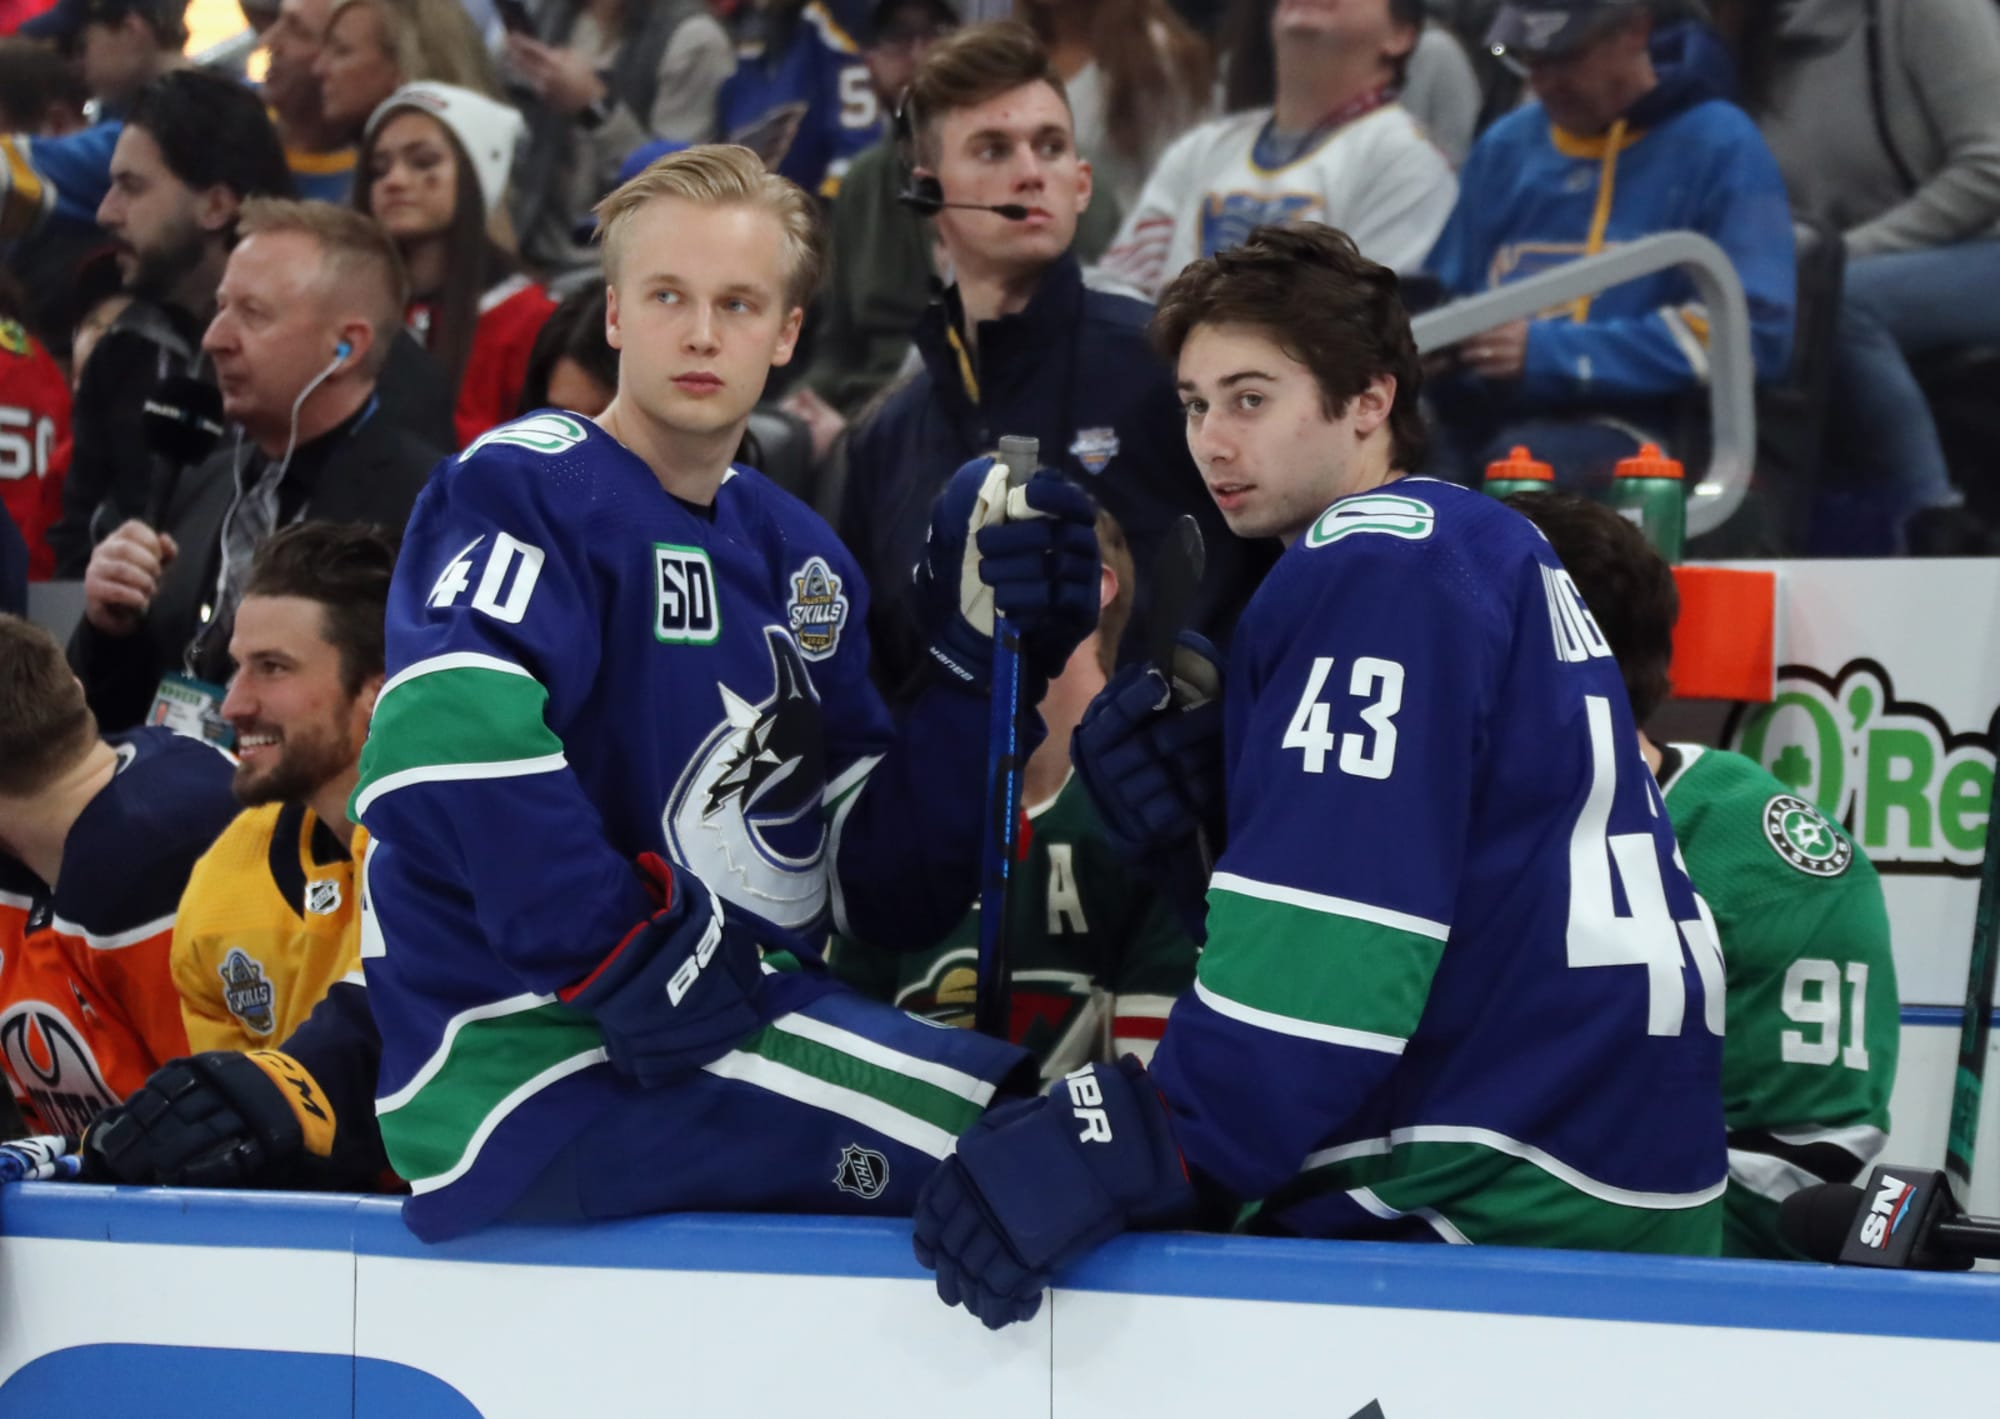 Canucks: Youth and inexperience could be an advantage